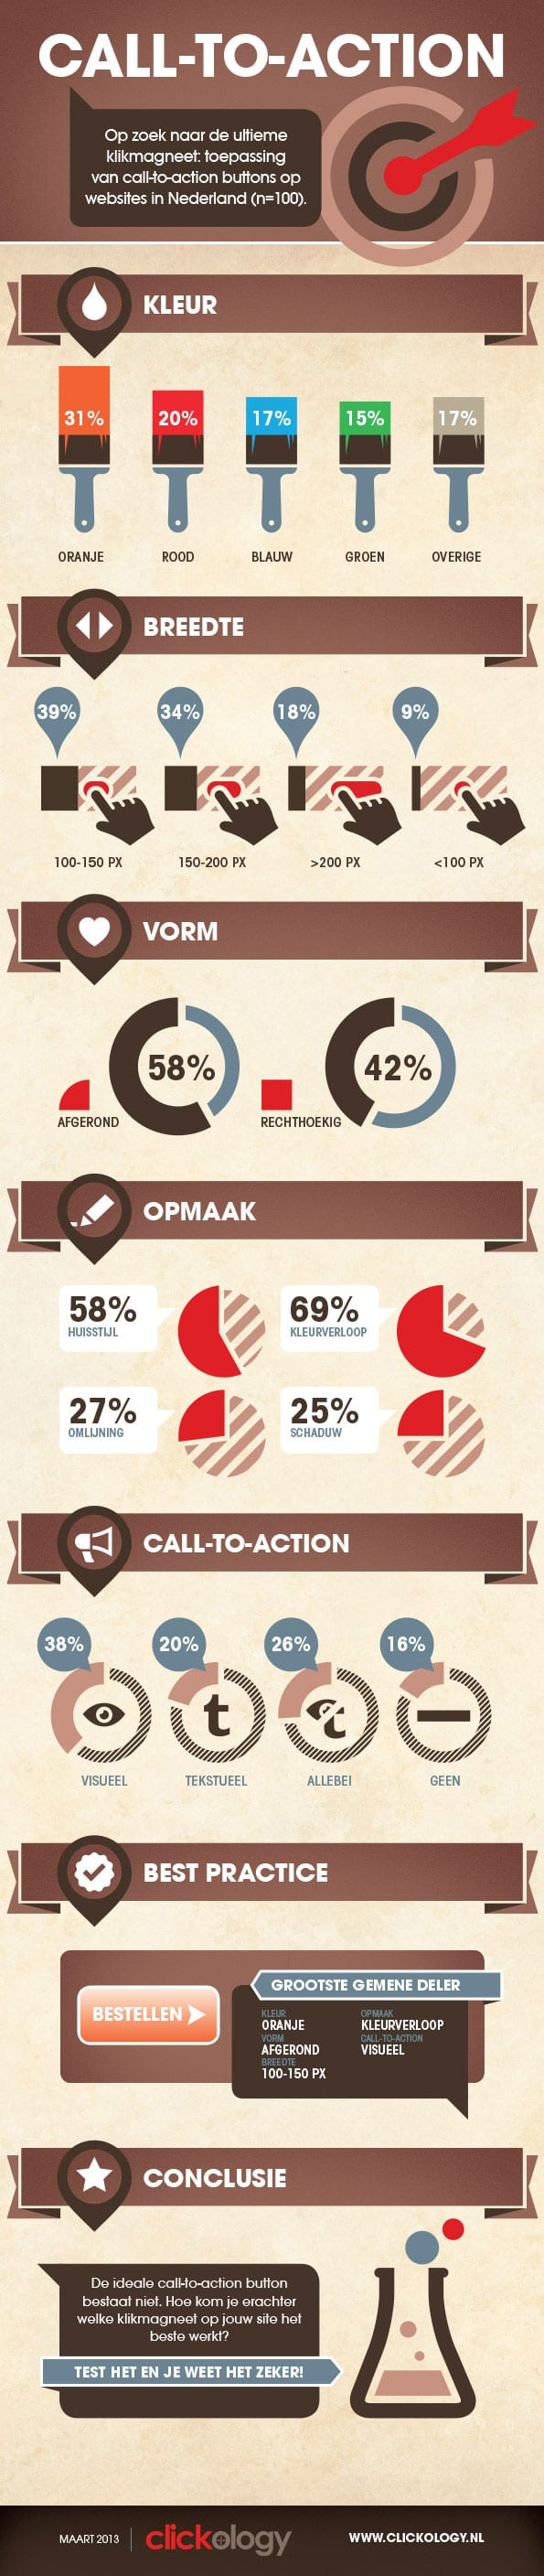 Infographic: call-to-action